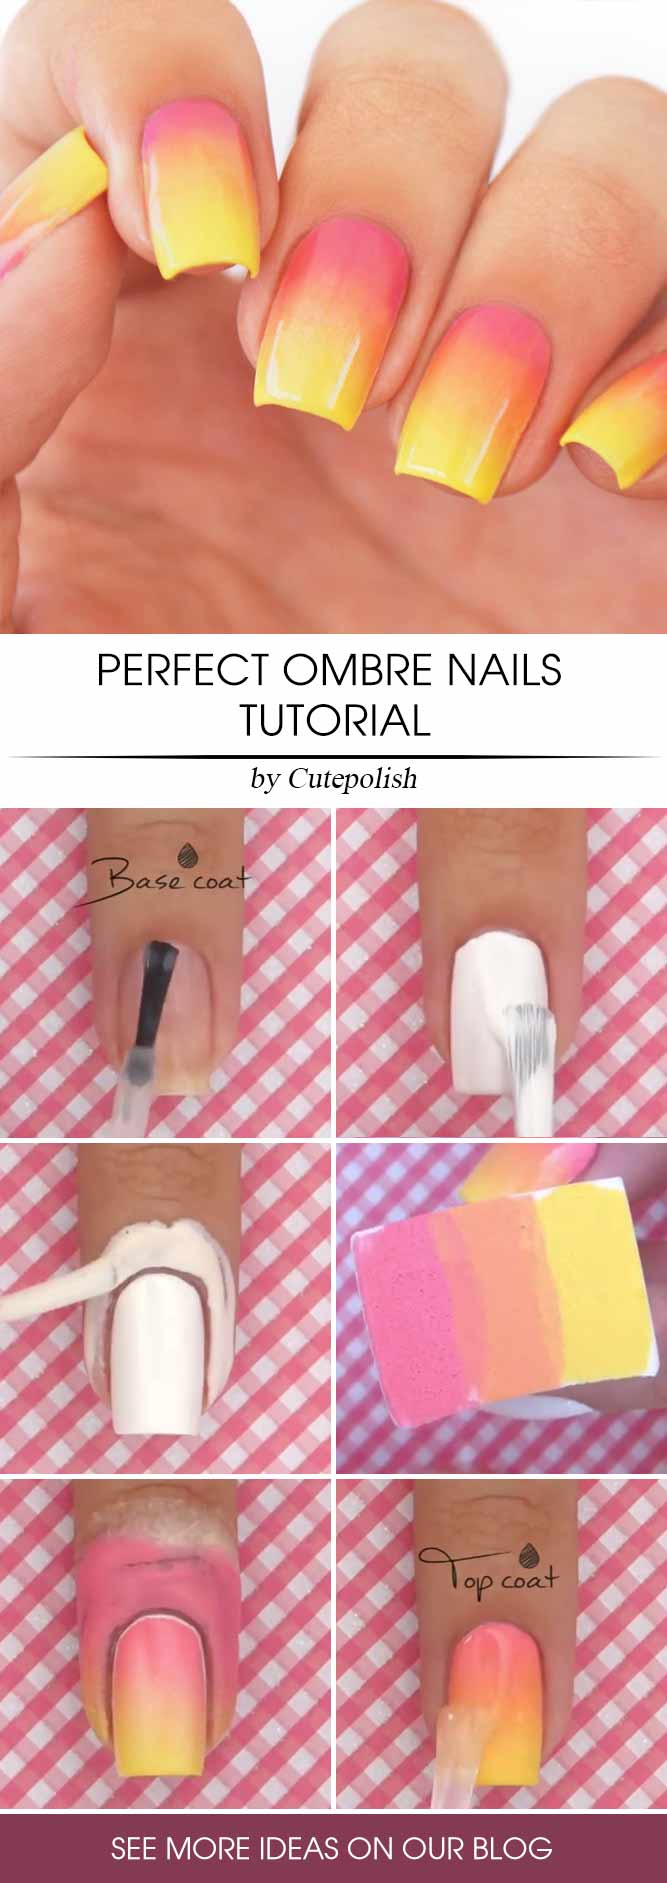 How To Do Ombre Nails Step By Step #diyombre #nailstutorial